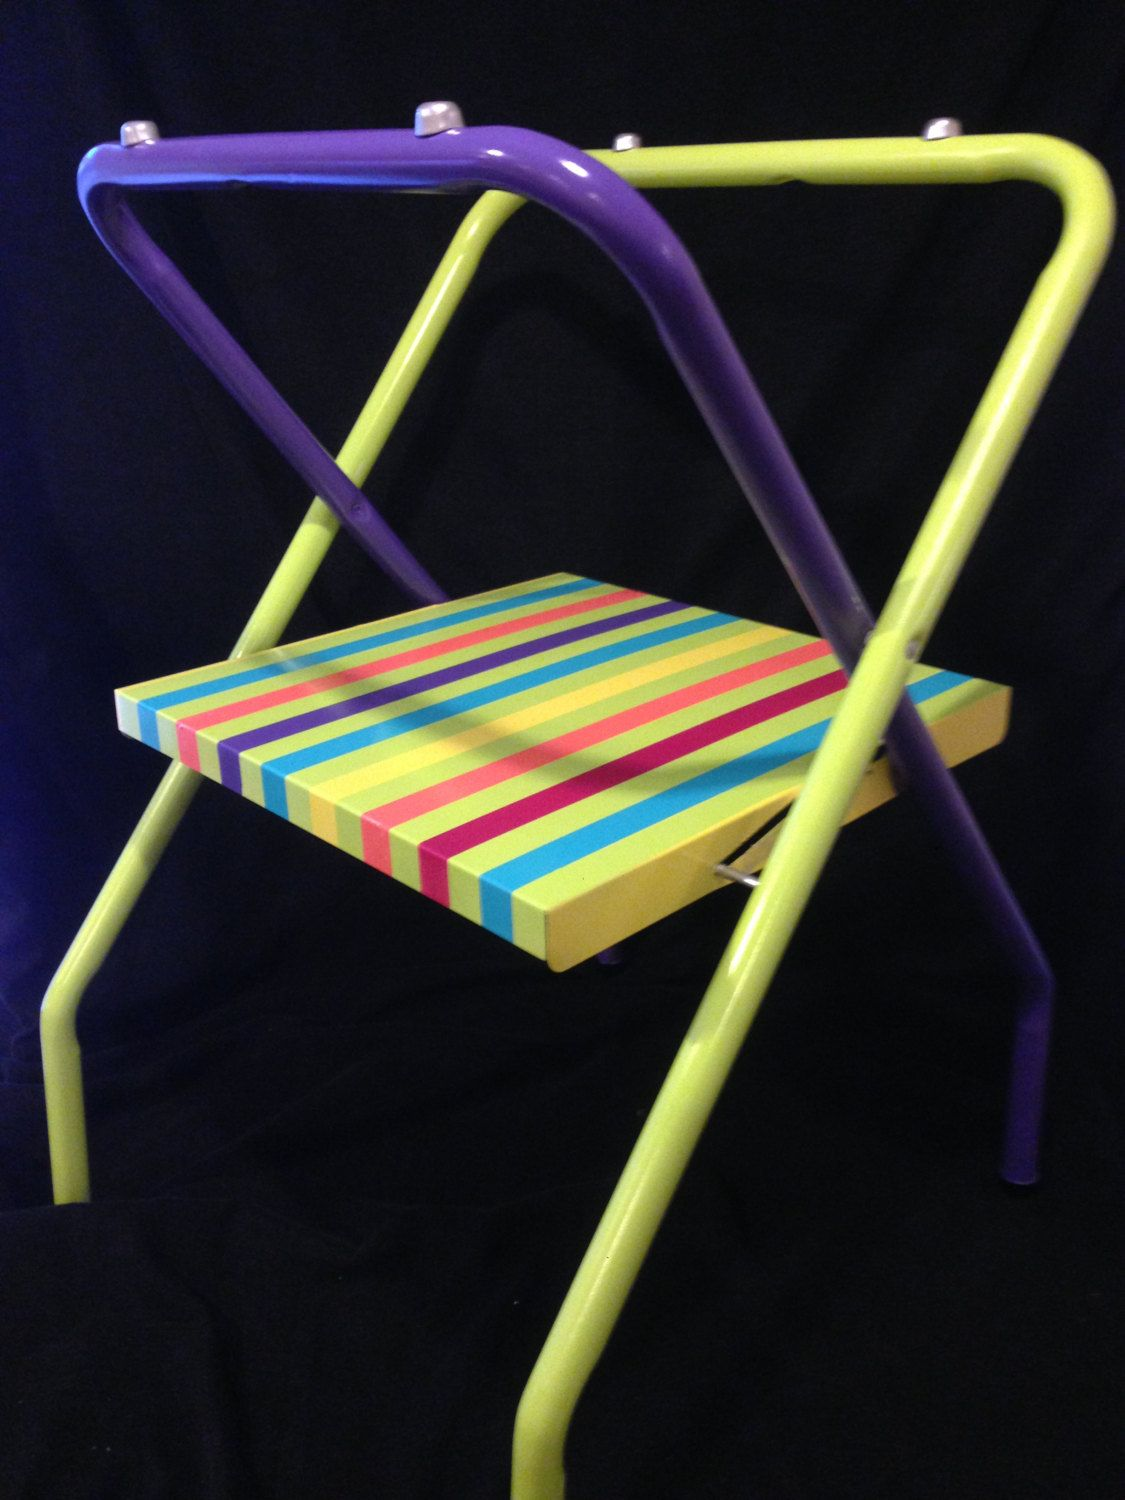 Rut Ro!  Colorfully Striped Busboy Tray Stand for your Summer Parties! by byRQ on Etsy